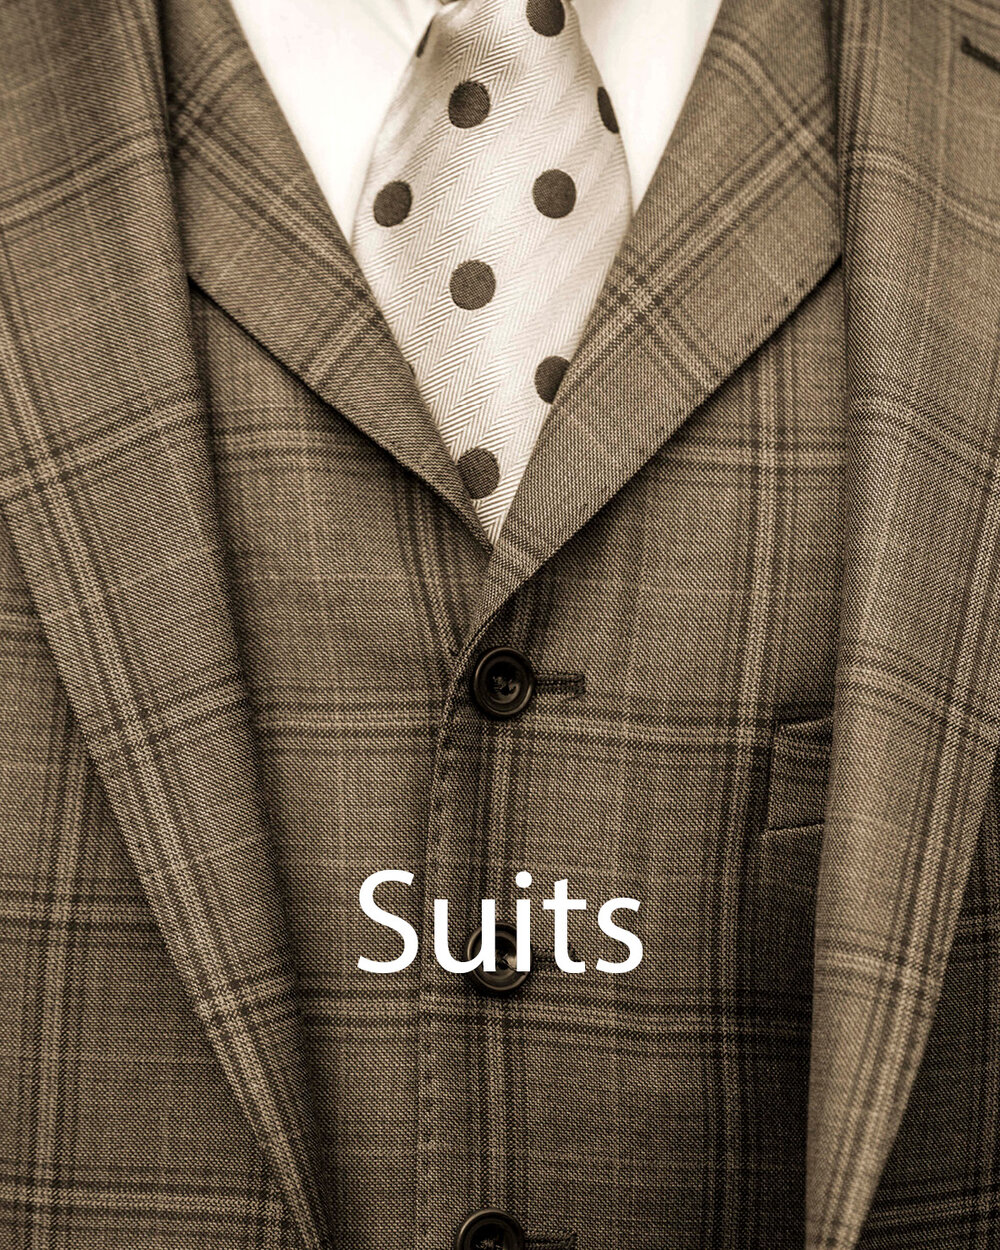 Image gateway to Suits page of Symonds of Hereford Website